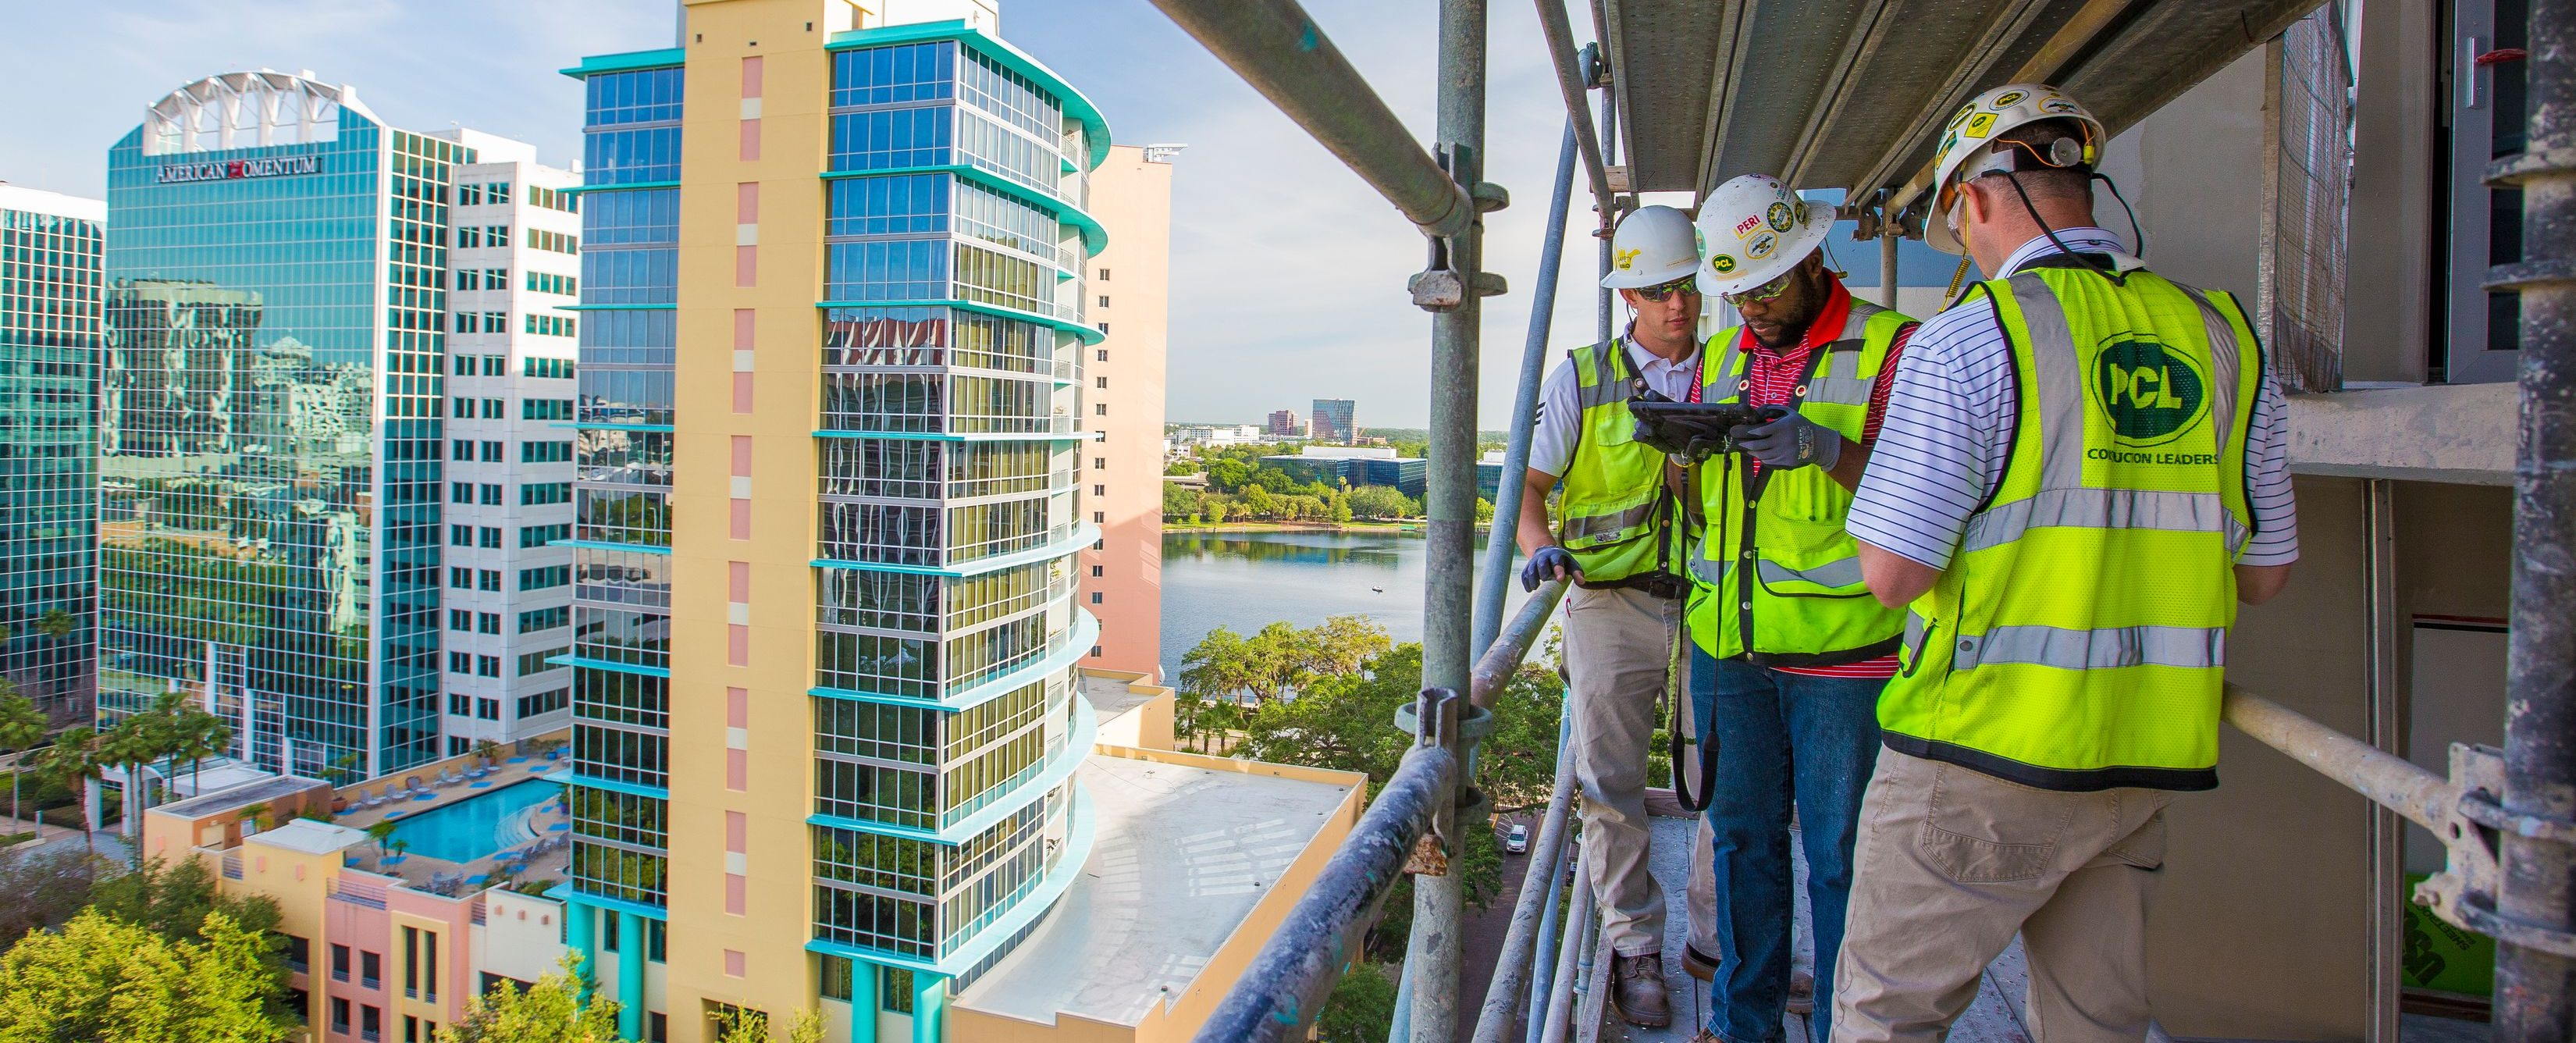 Pcl Constructors Reach New Heights With Real Time